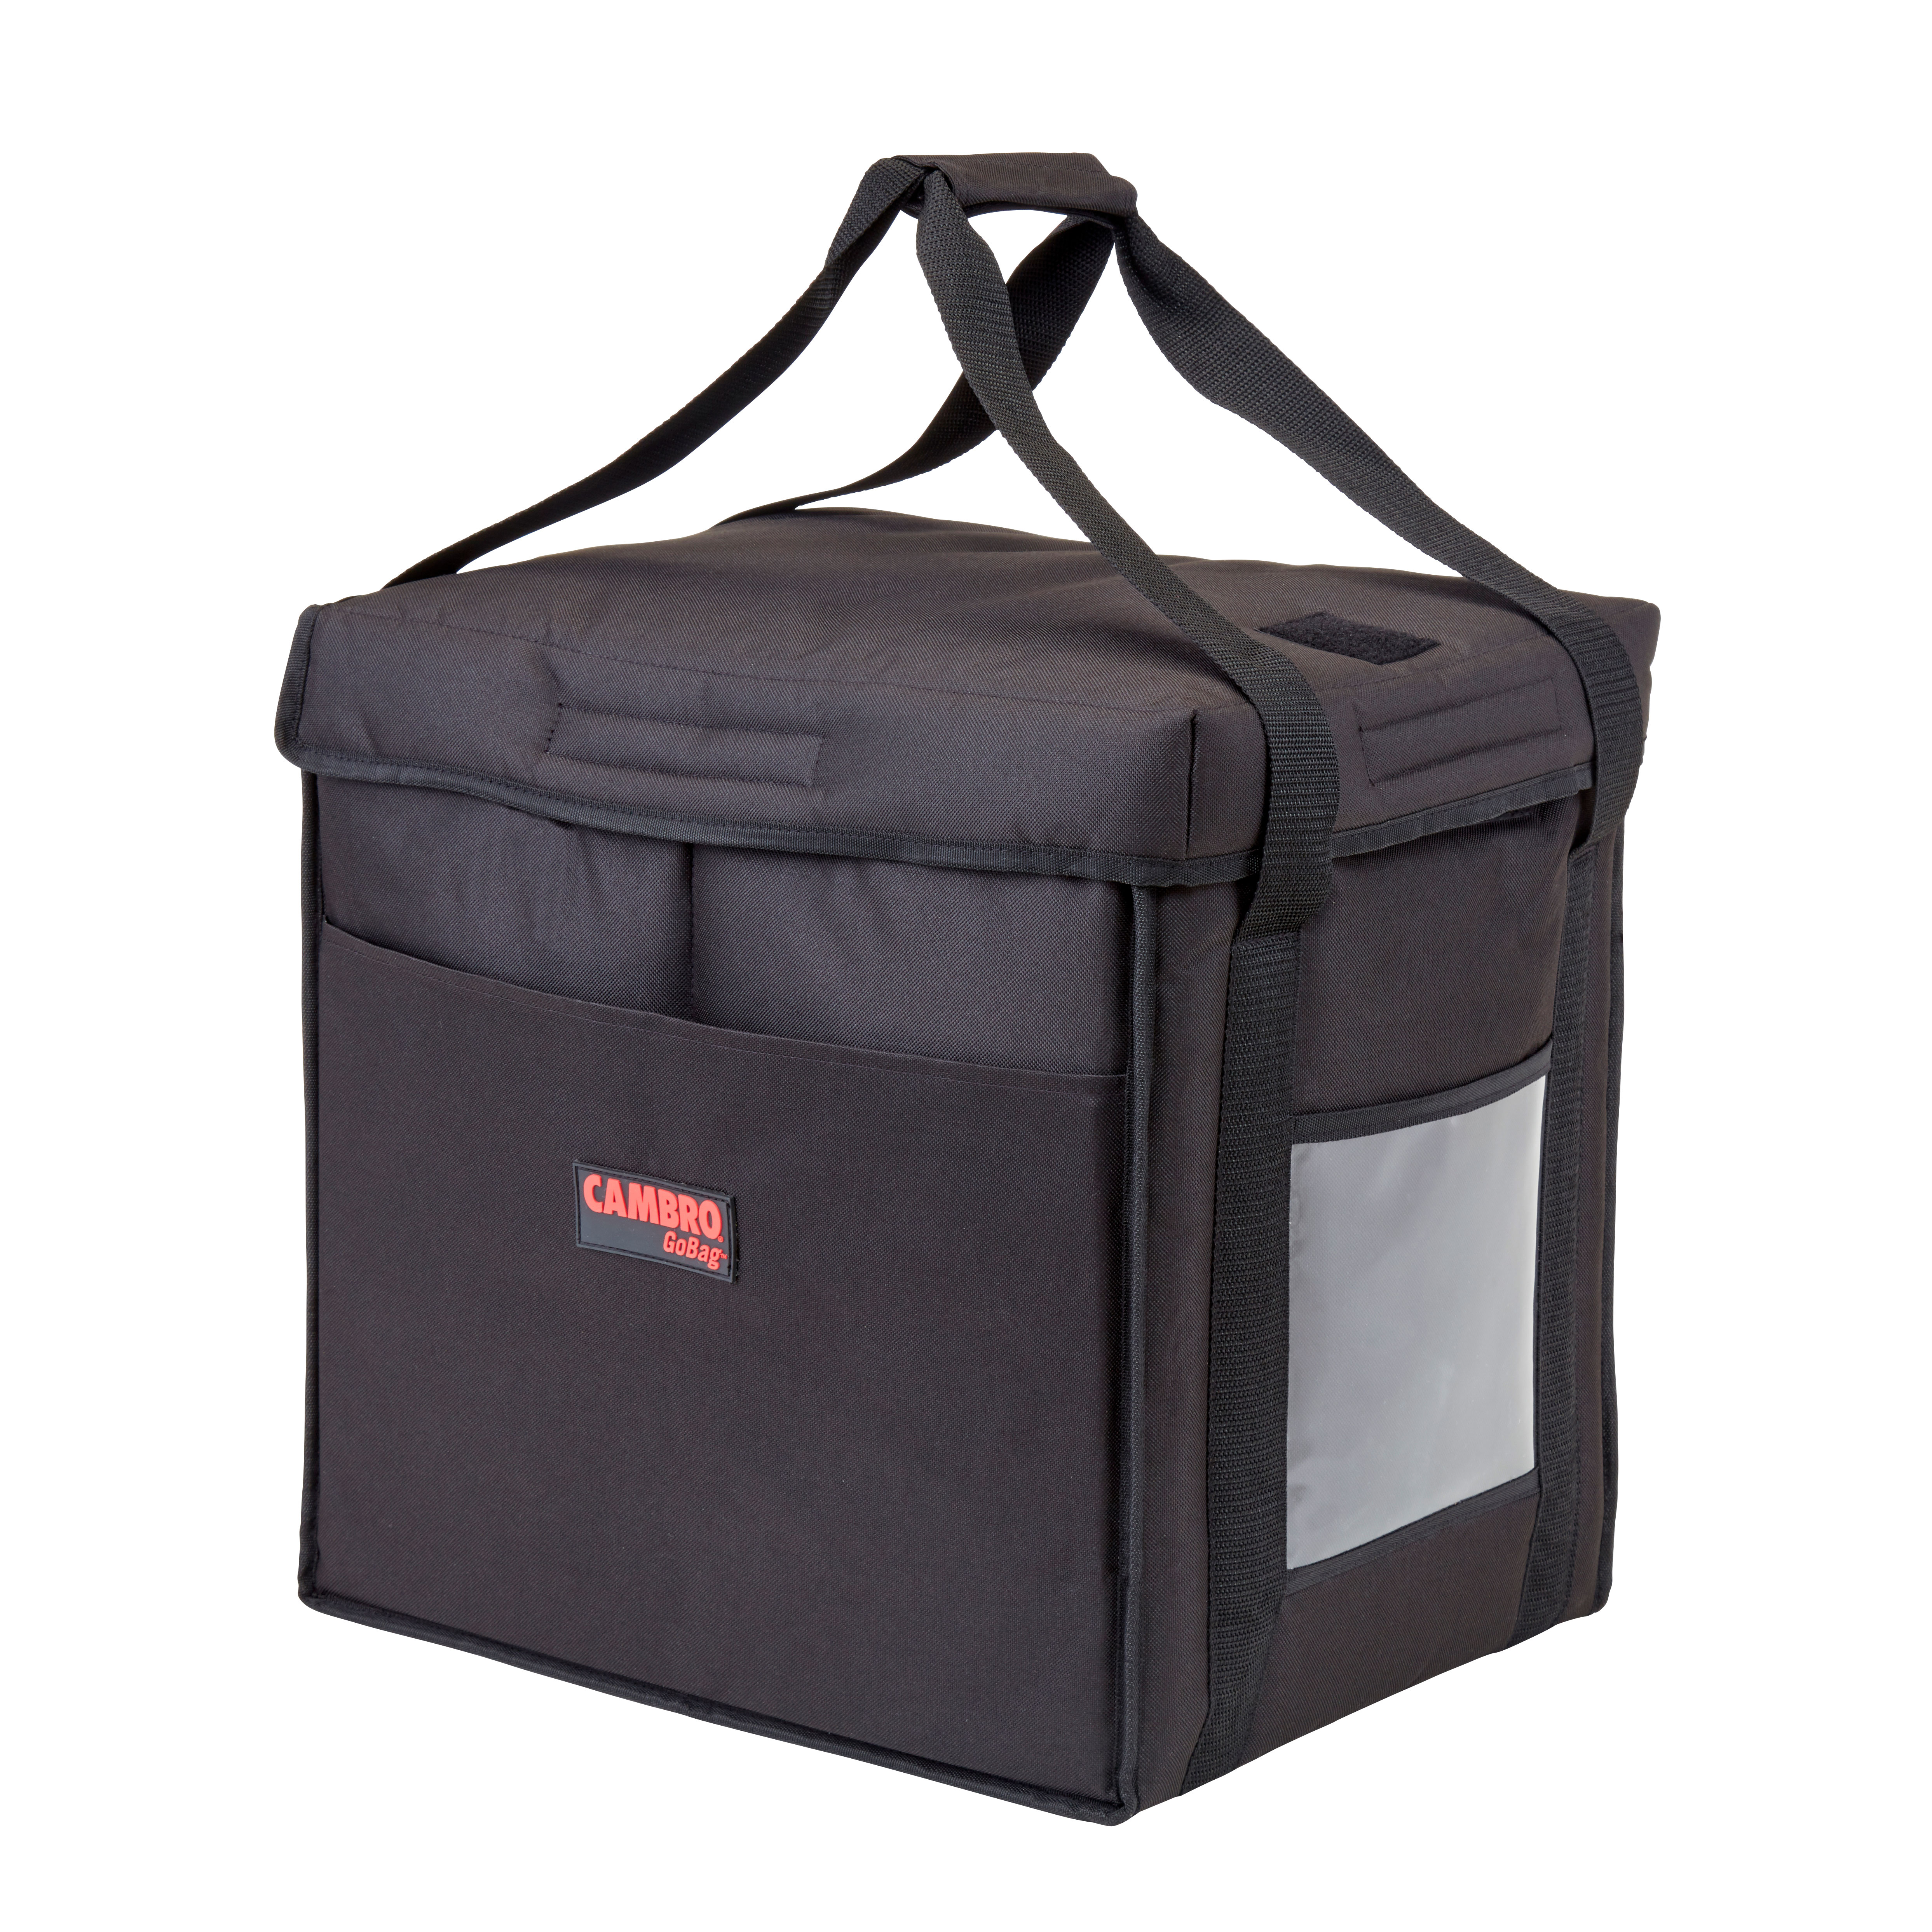 Cambro GBD121515110 food carrier, soft material